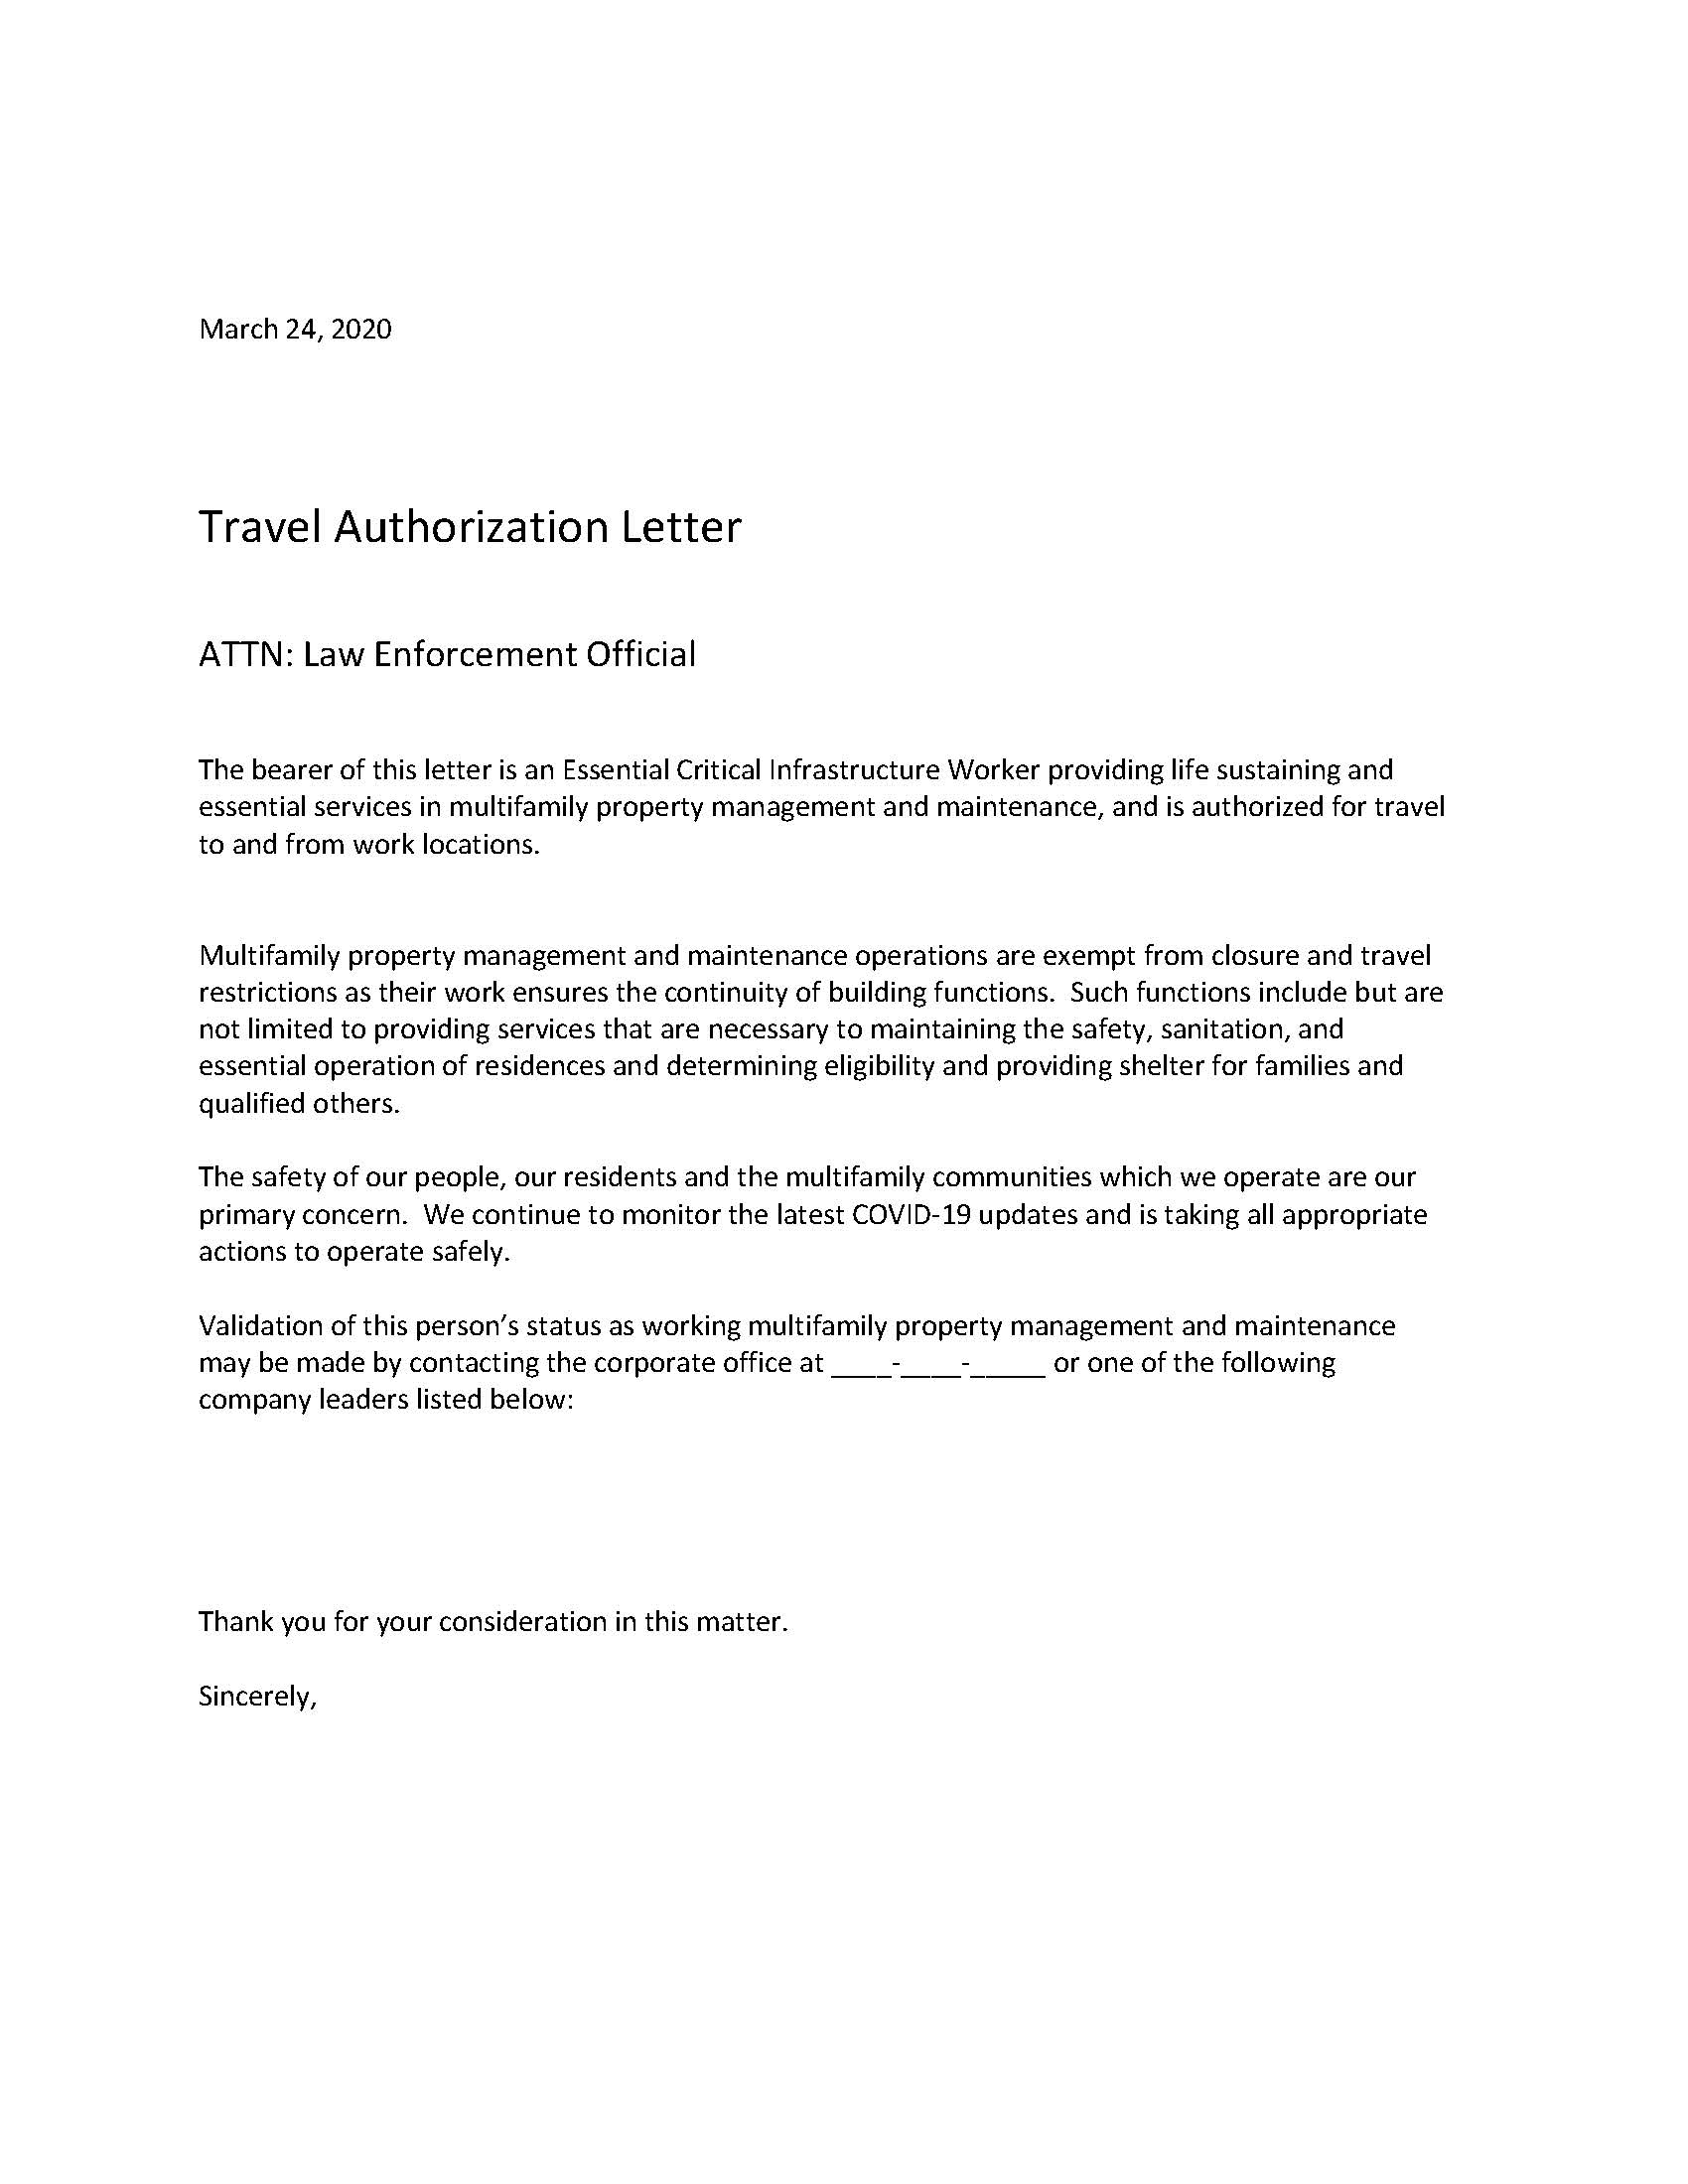 Letter Of Authorization From Property Owner from assets.noviams.com